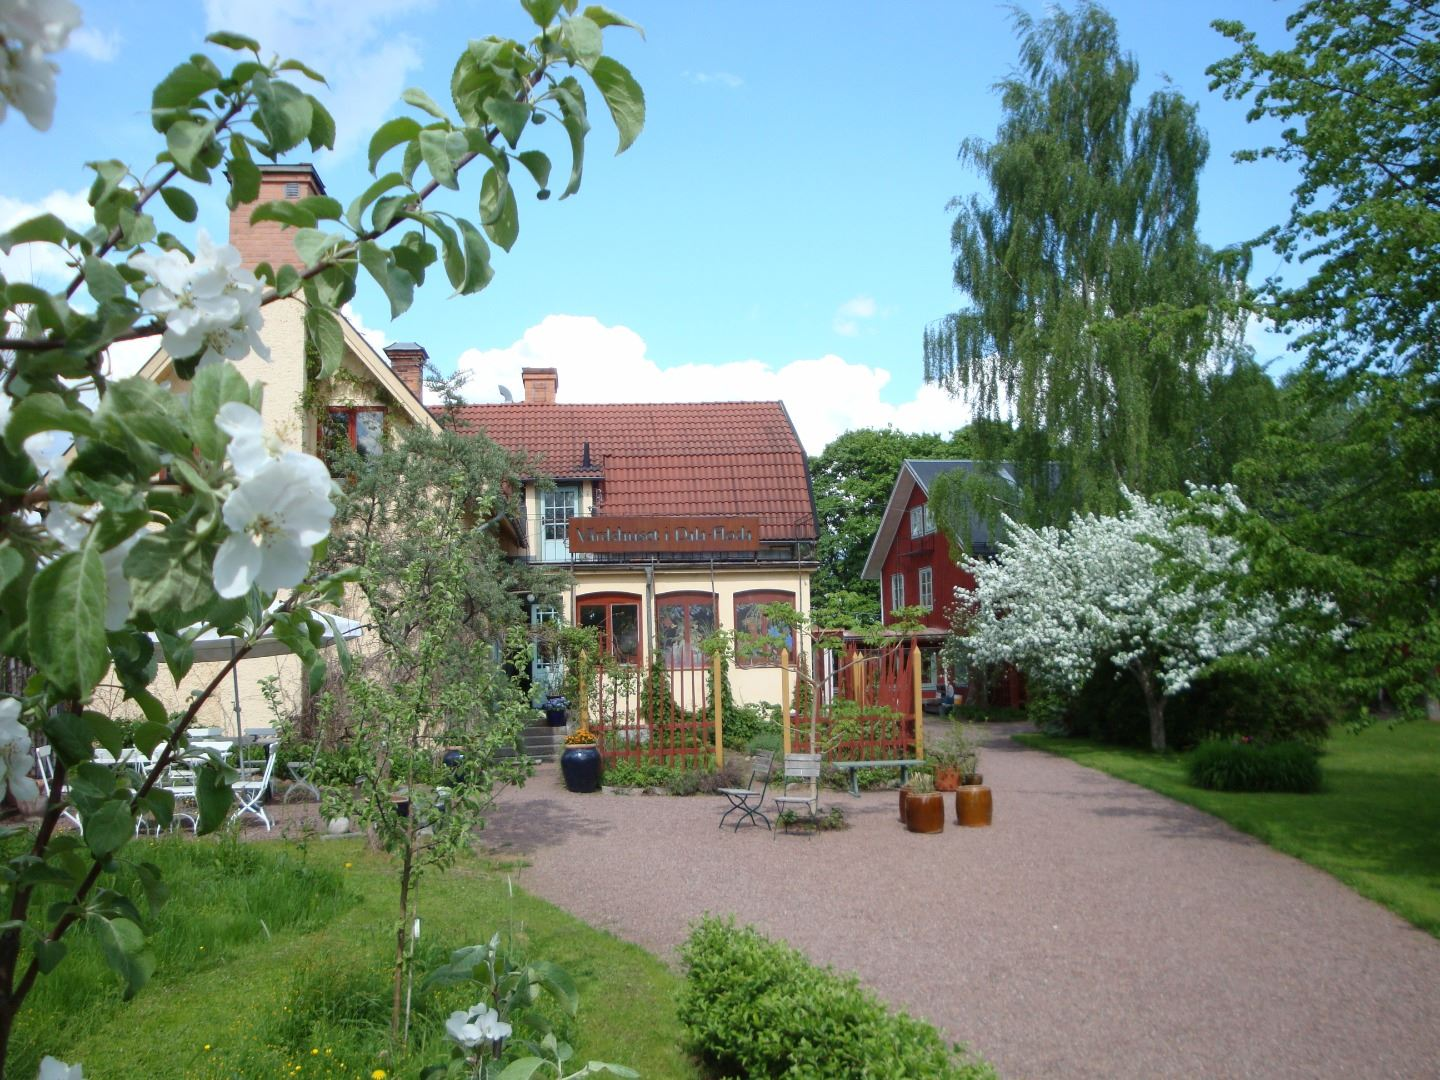 Dala-Floda Värdshus – the ecological hostelry